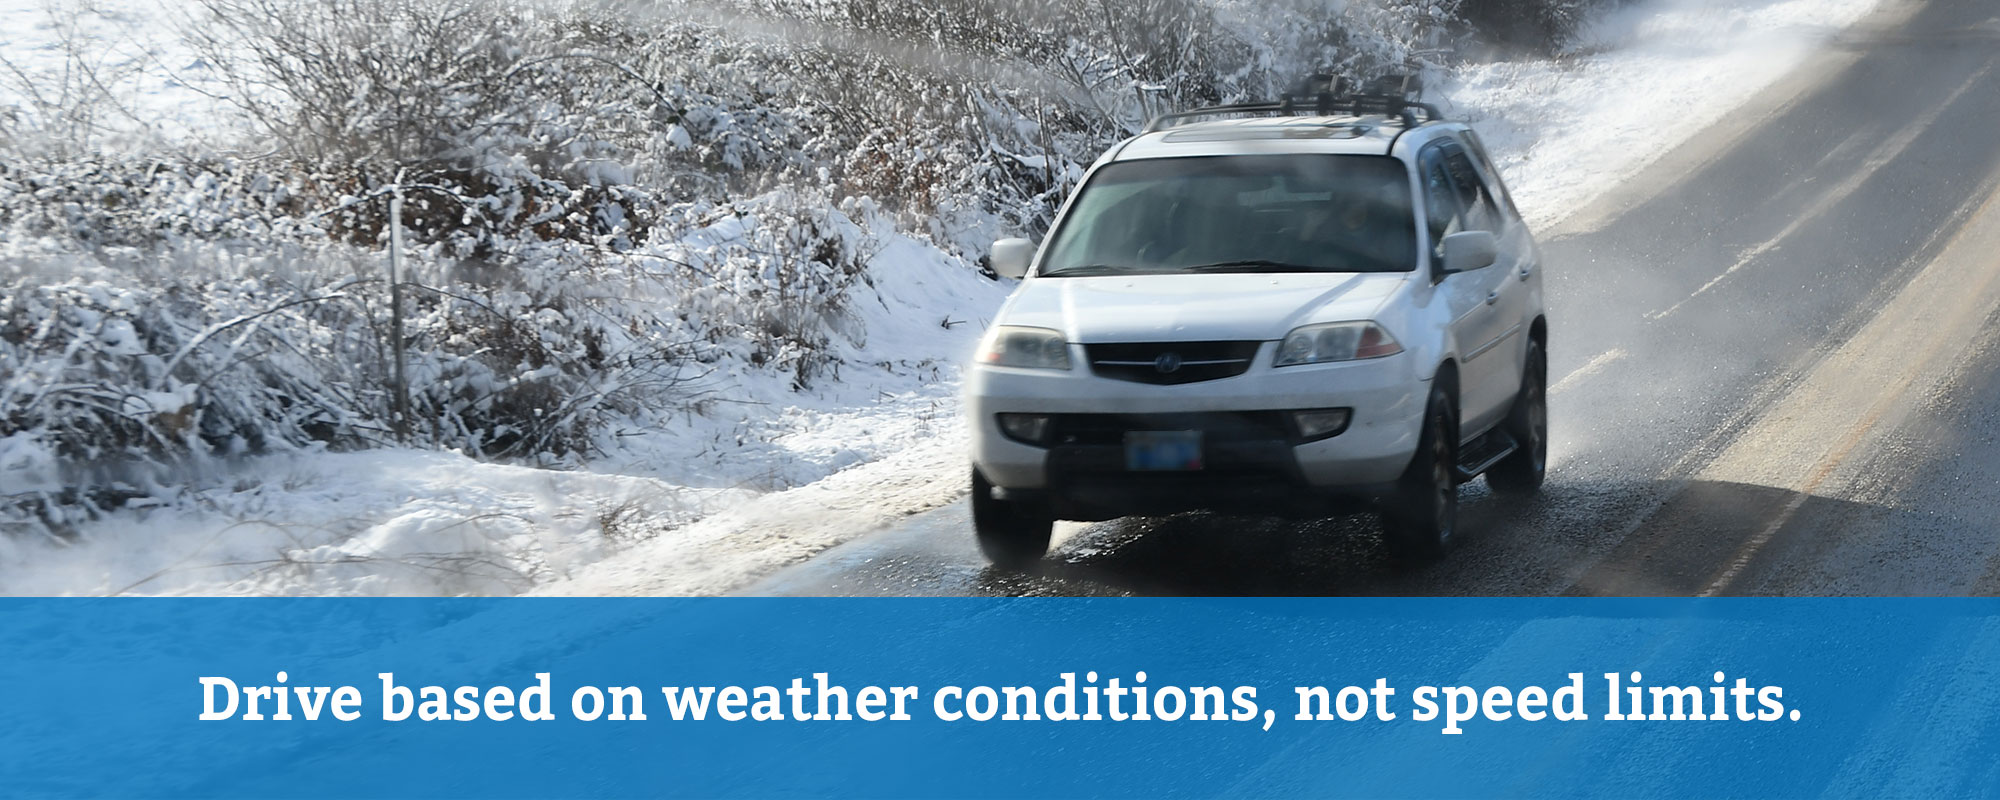 Drive based on weather conditions, not speed limits.